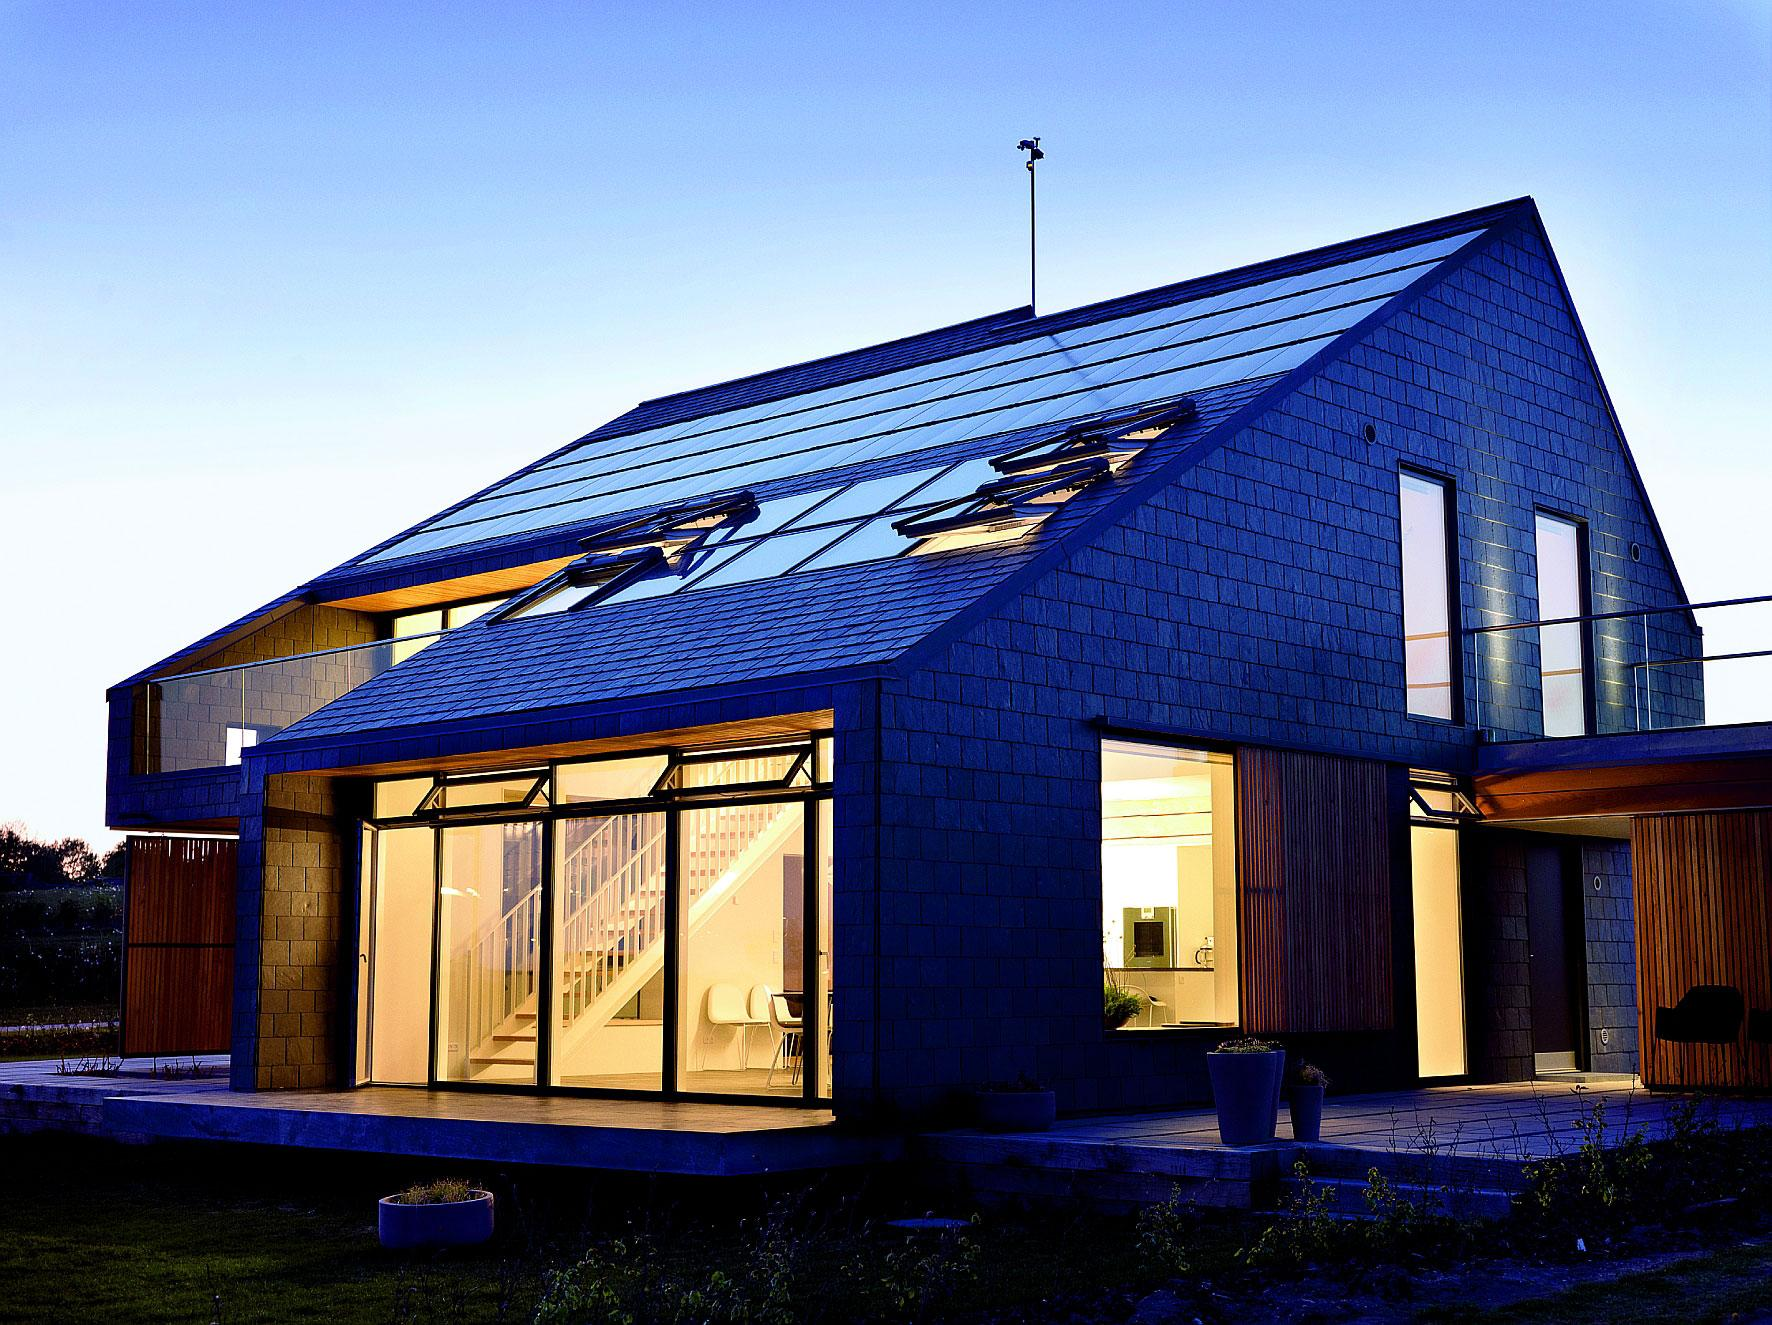 Energy efficient home a house in aarhus denmark for Building the most energy efficient home